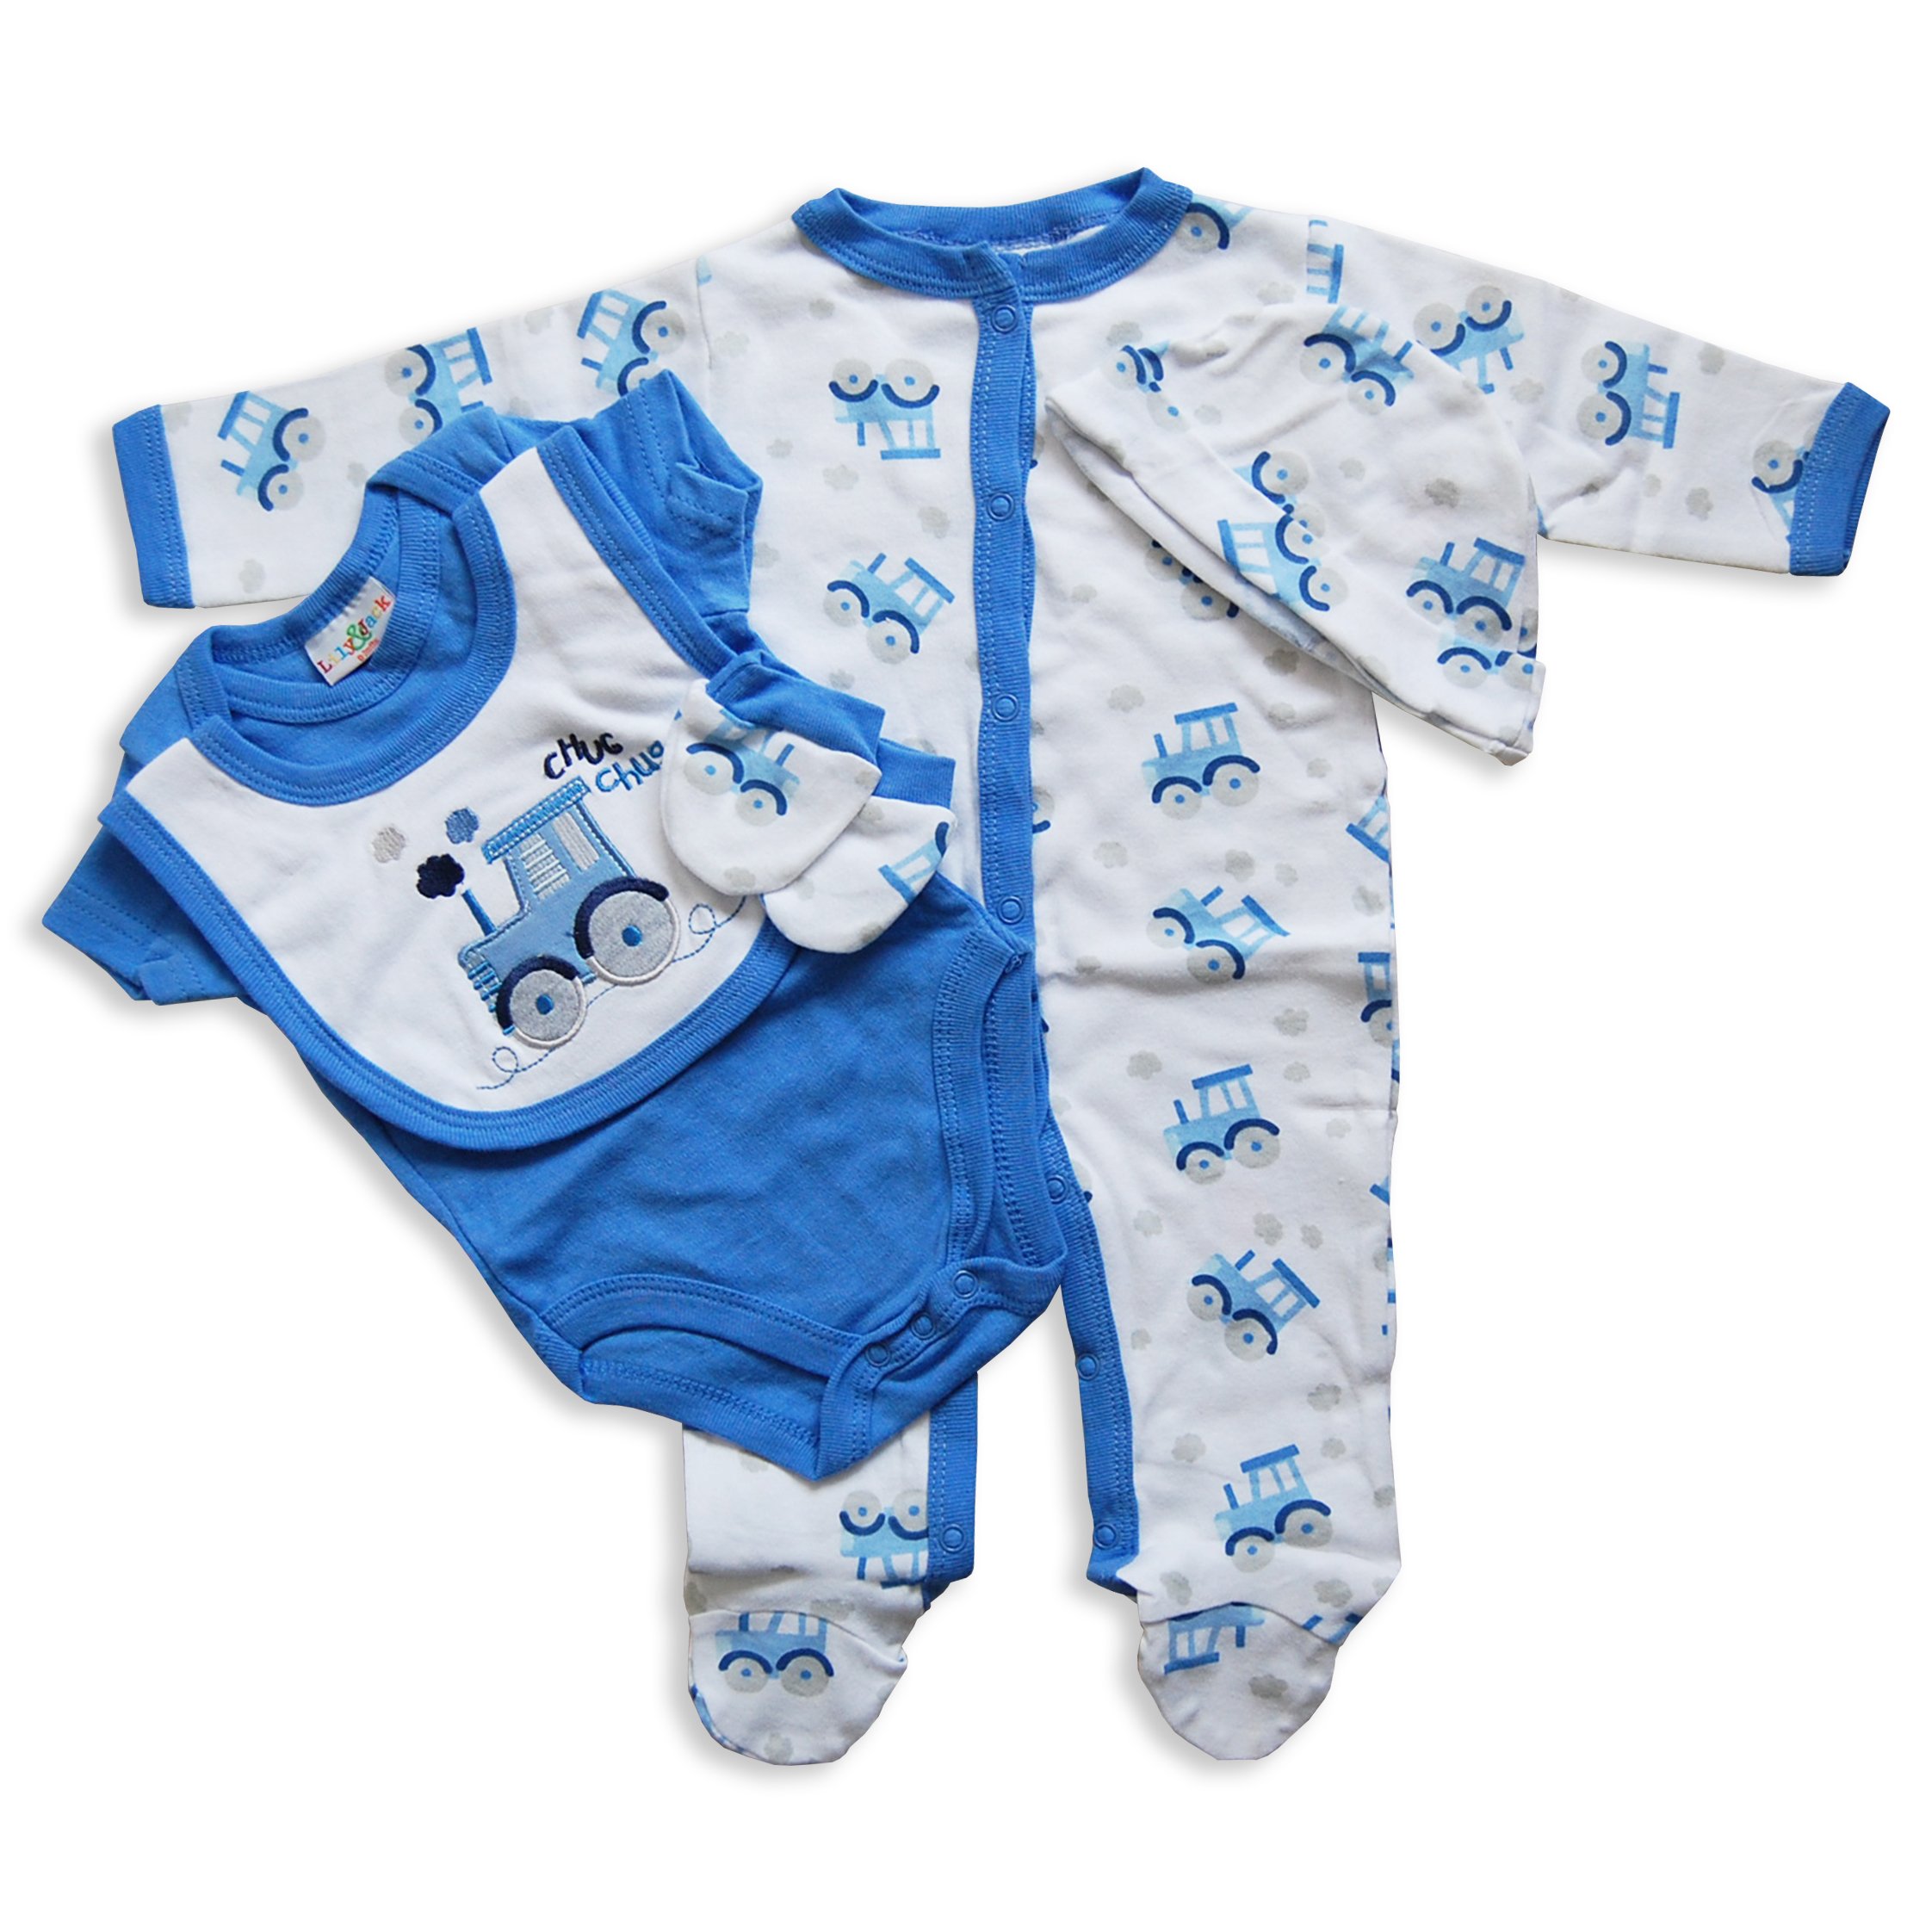 Baby Boy Gifts Sets : Piece baby boys girls layette clothing gift set box by